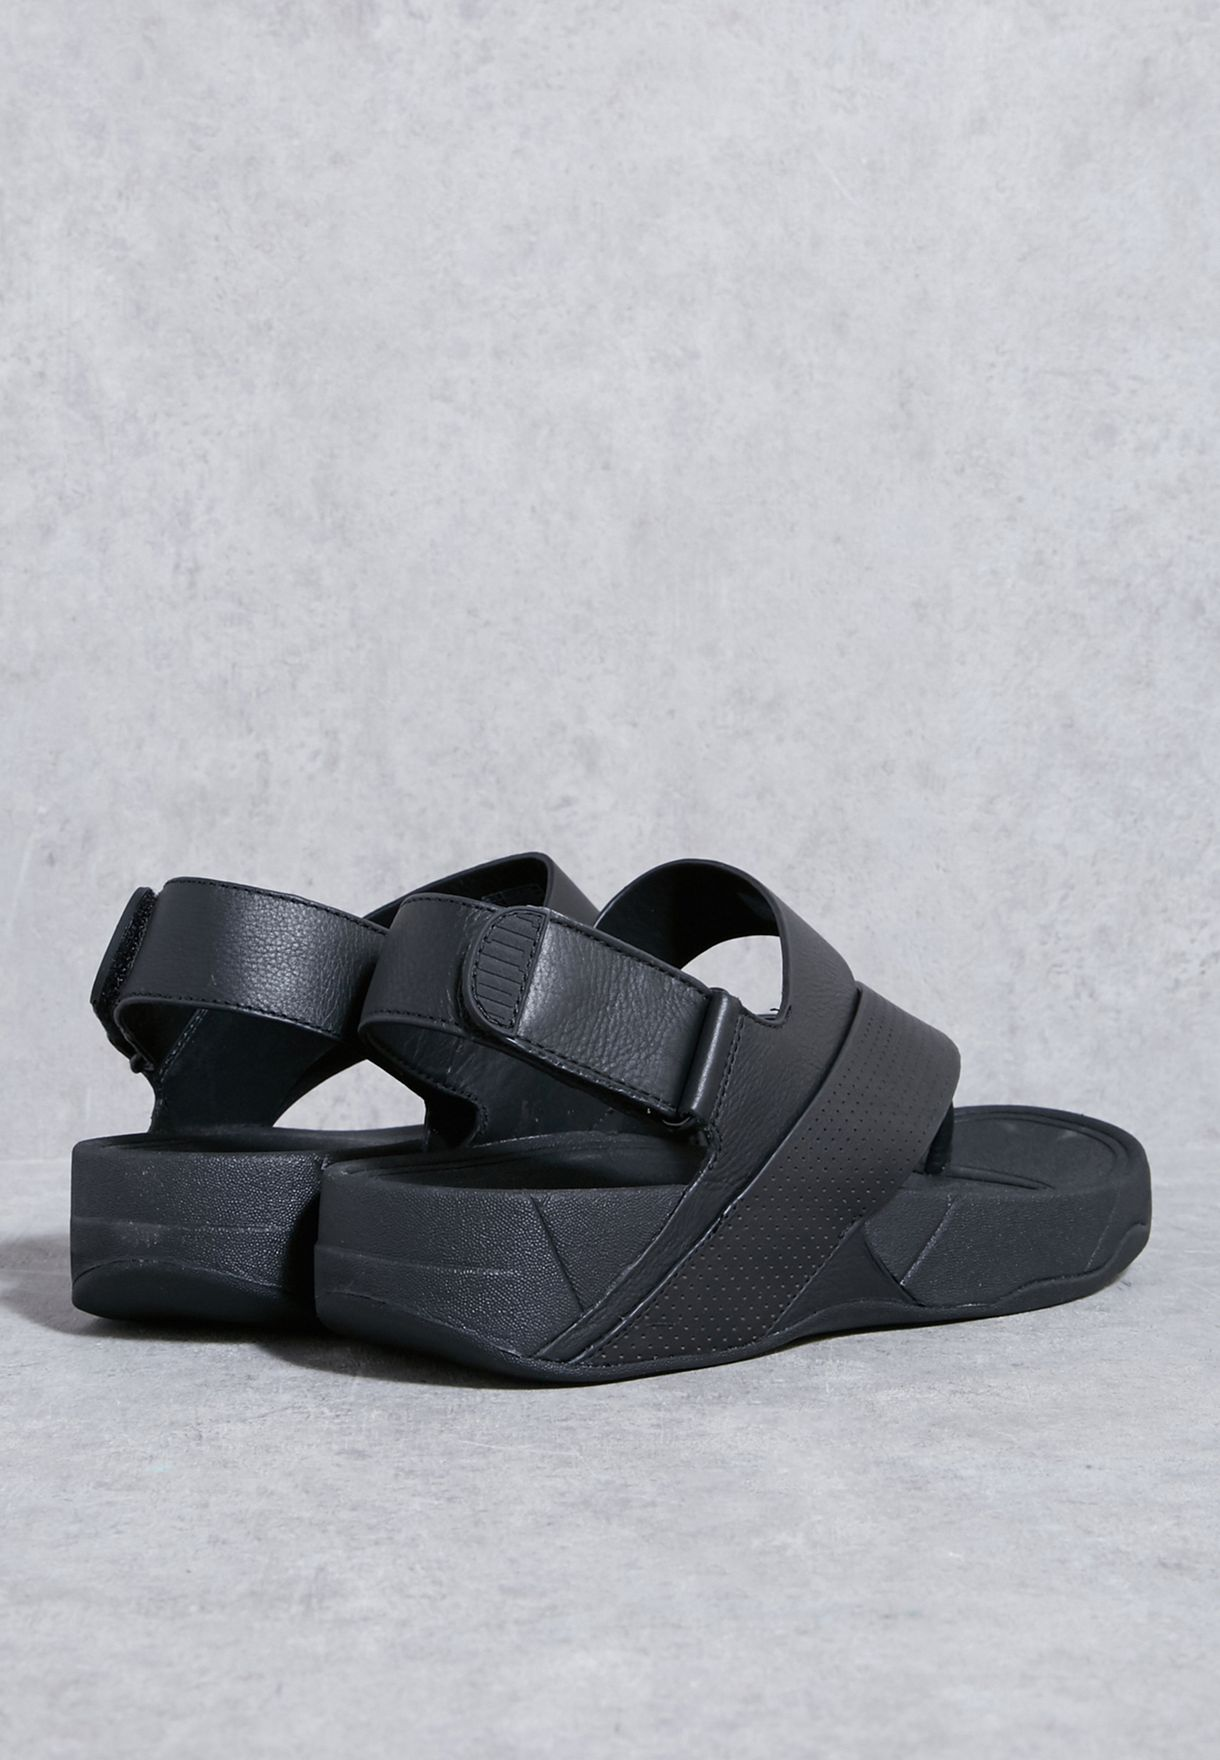 e01f14bac69 Shop Fitflop black Sling Perf Sandals H05-090 for Men in Kuwait ...